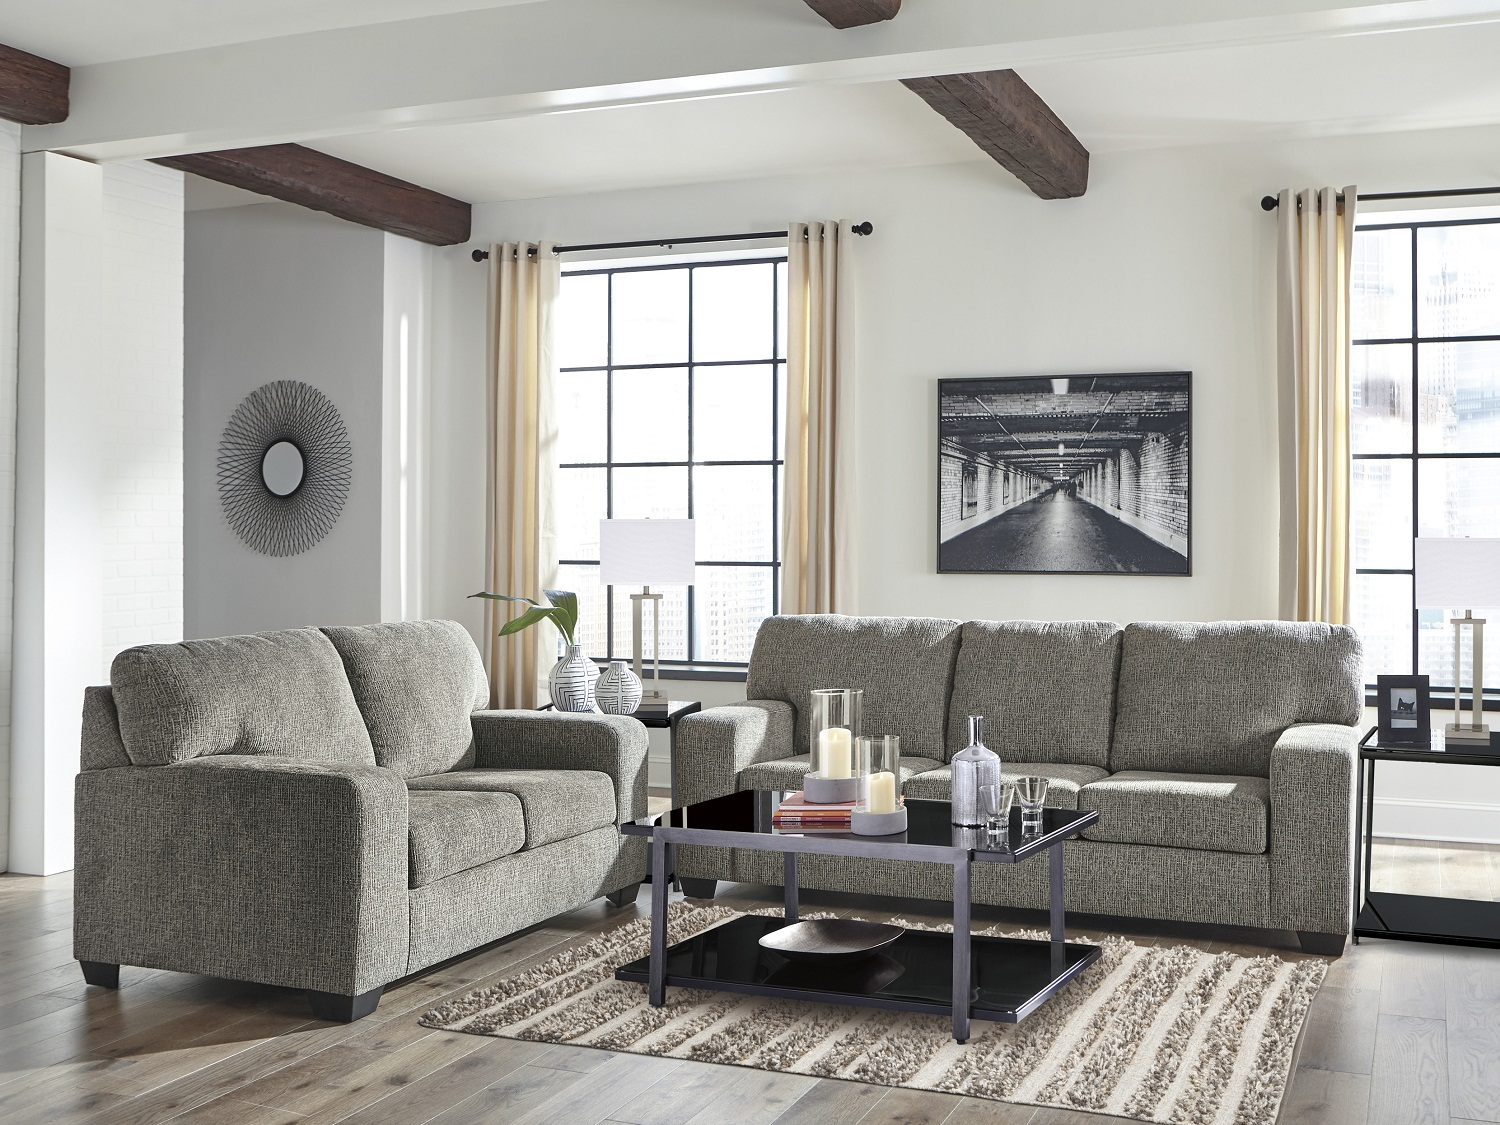 Termoli Sofa Only, 727, Sofa Sets by Midha Furniture to Brampton, Mississauga, Etobicoke, Toronto, Scraborough, Caledon, Oakville, Markham, Ajax, Pickering, Oshawa, Richmondhill, Kitchener, Hamilton and GTA area